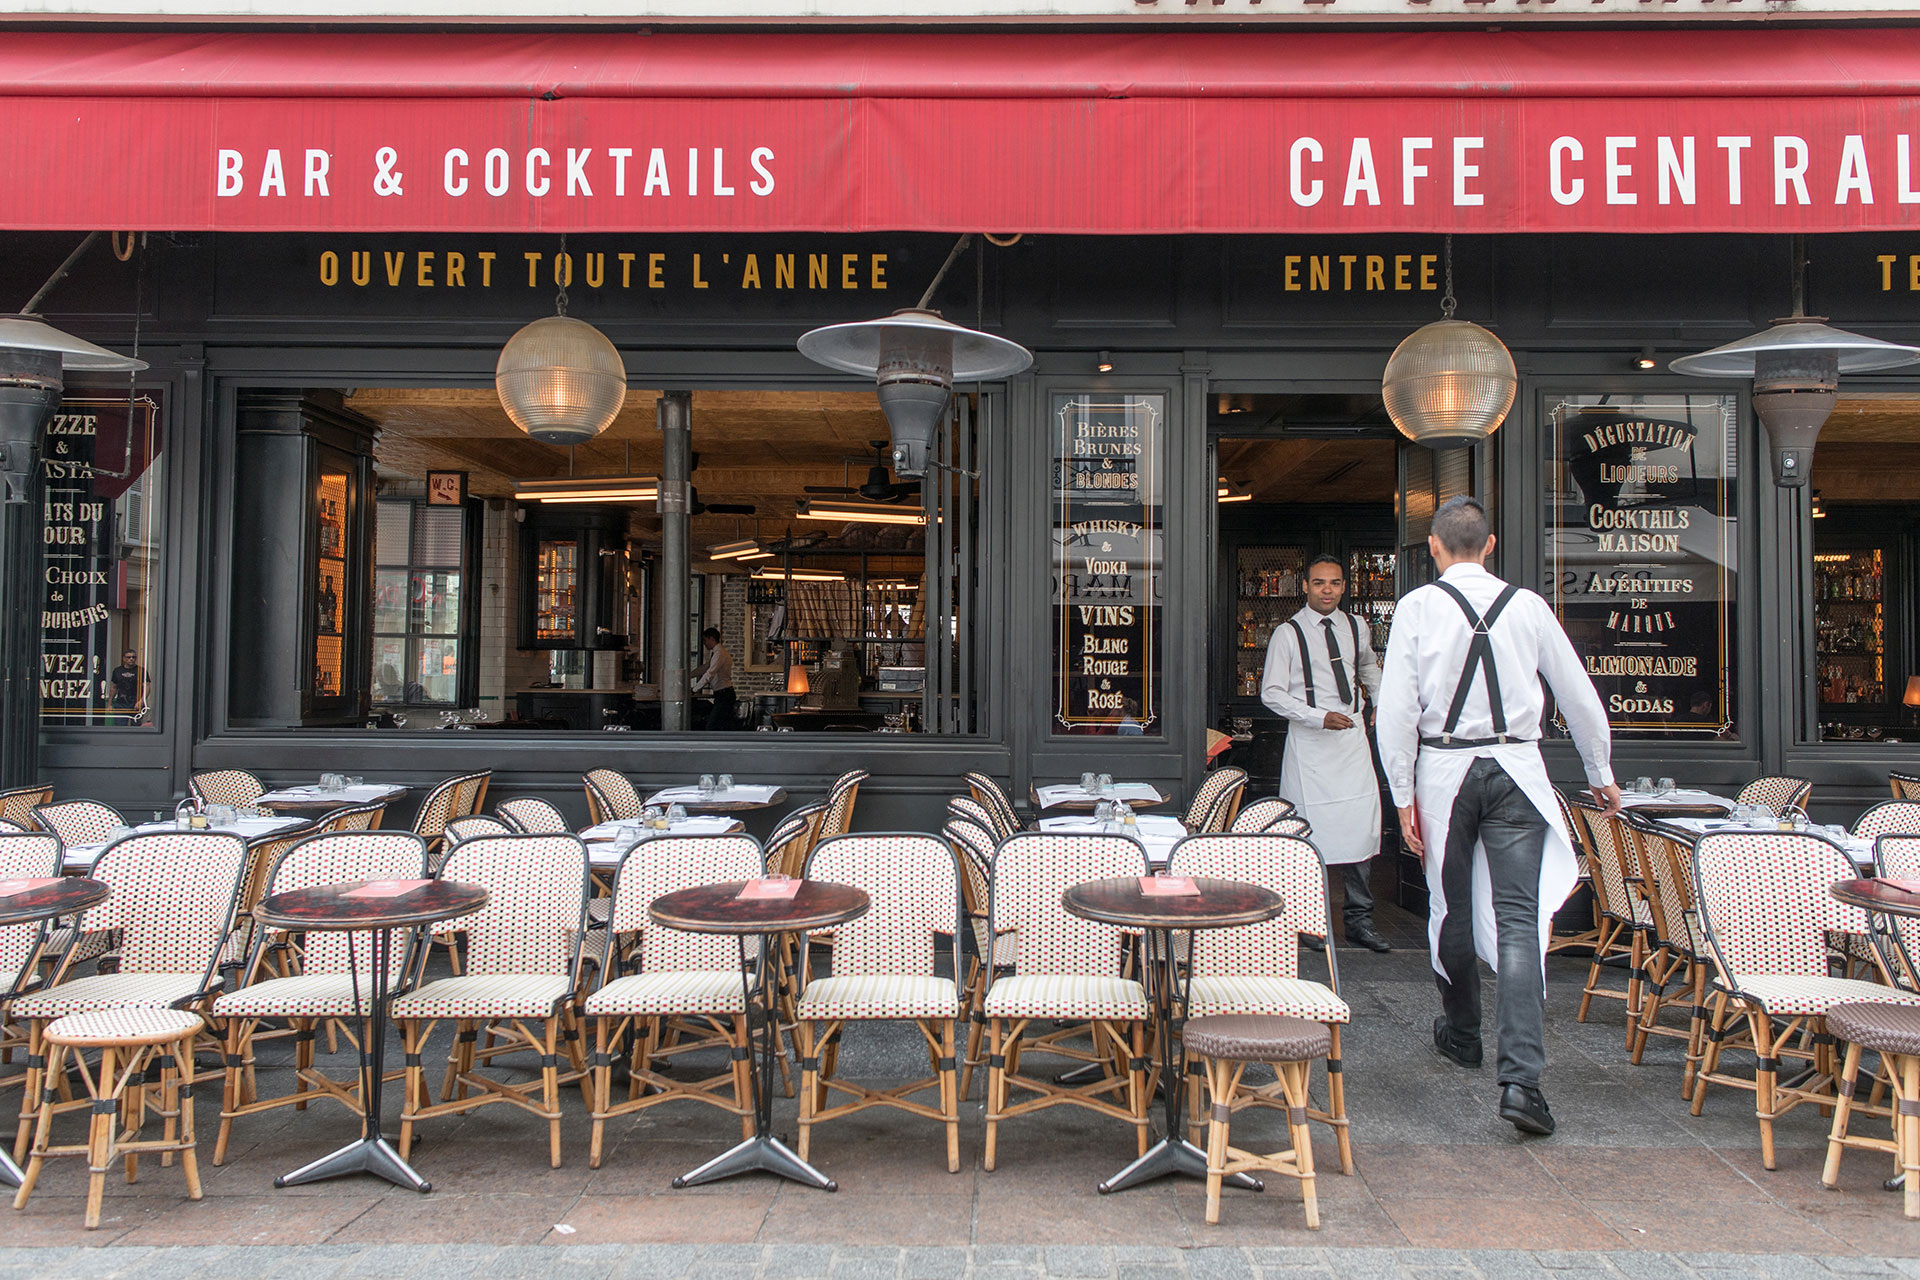 Dine out at one of the many sidewalk cafes or restaurants